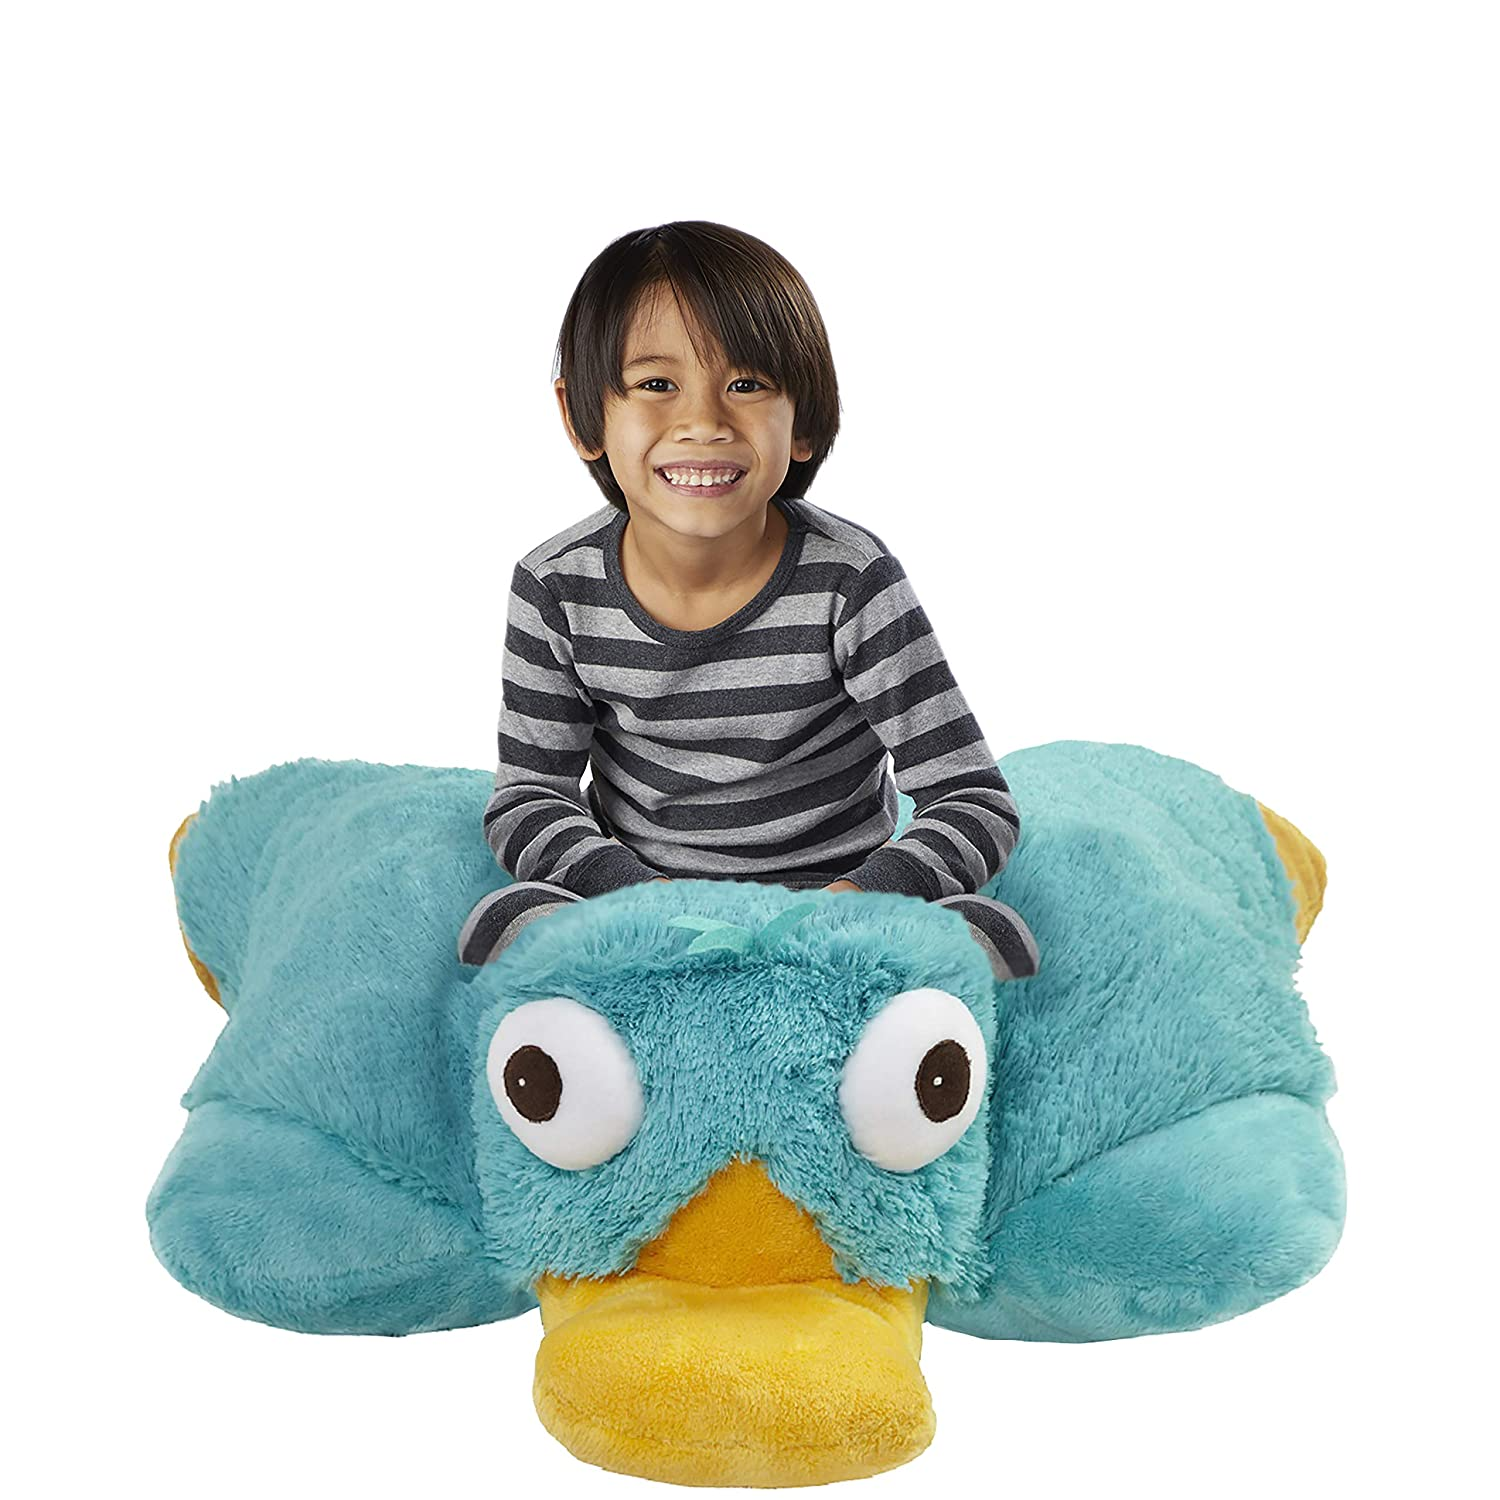 Pillow Pets Jumboz Phineas And Ferb Perry The Platypus 30 Jumbo Folding Plush Pillow Amazon In Home Kitchen